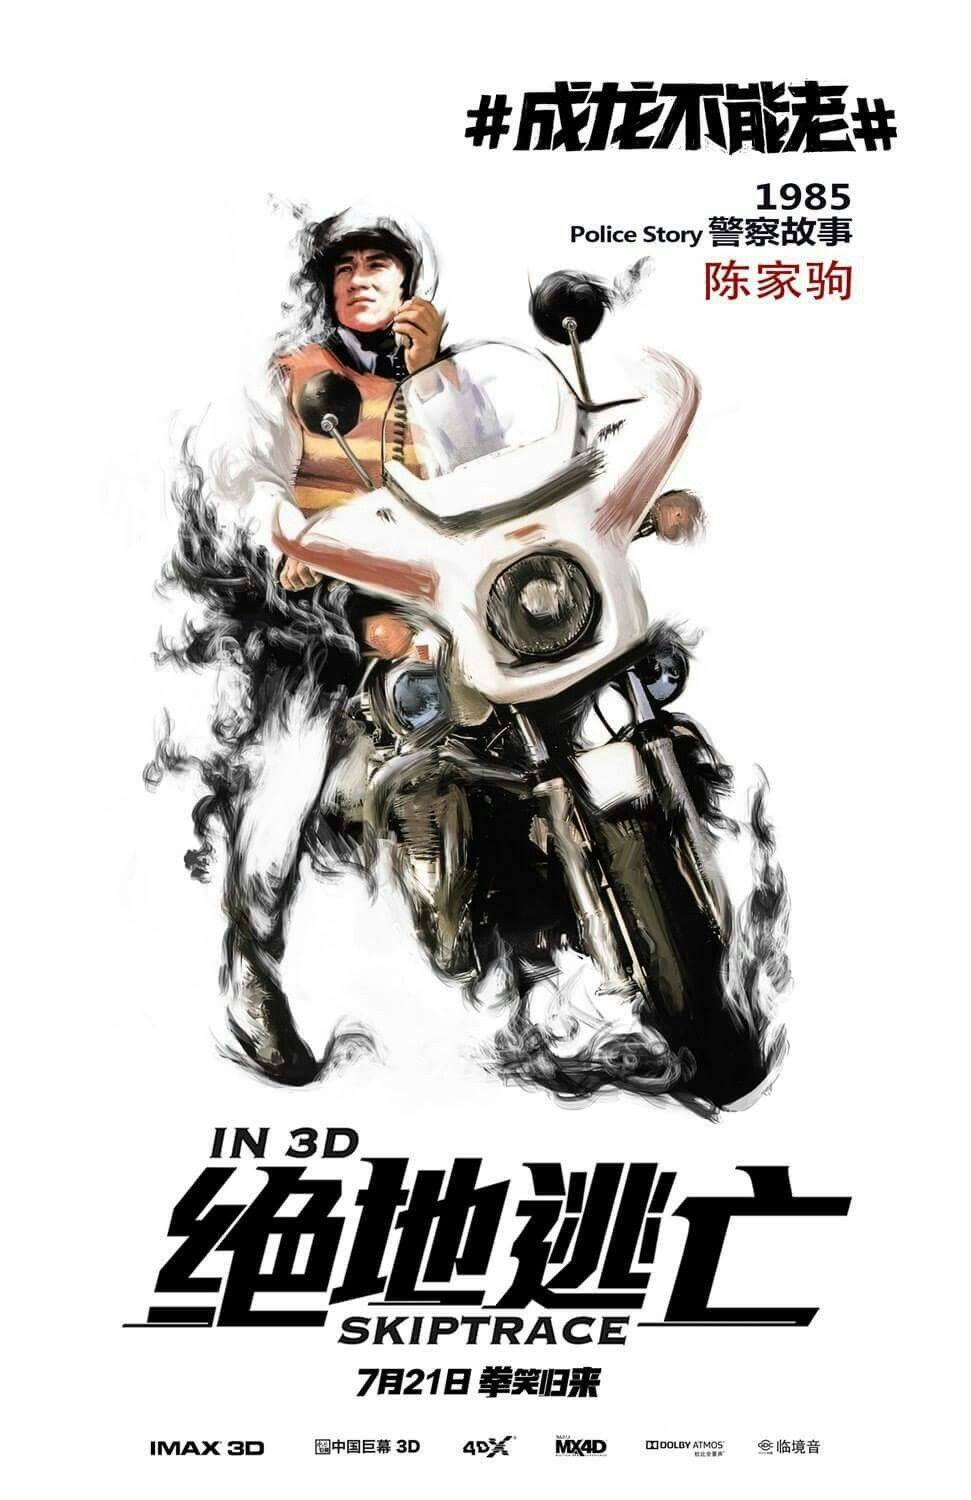 police story 1985 full movie download in hindi